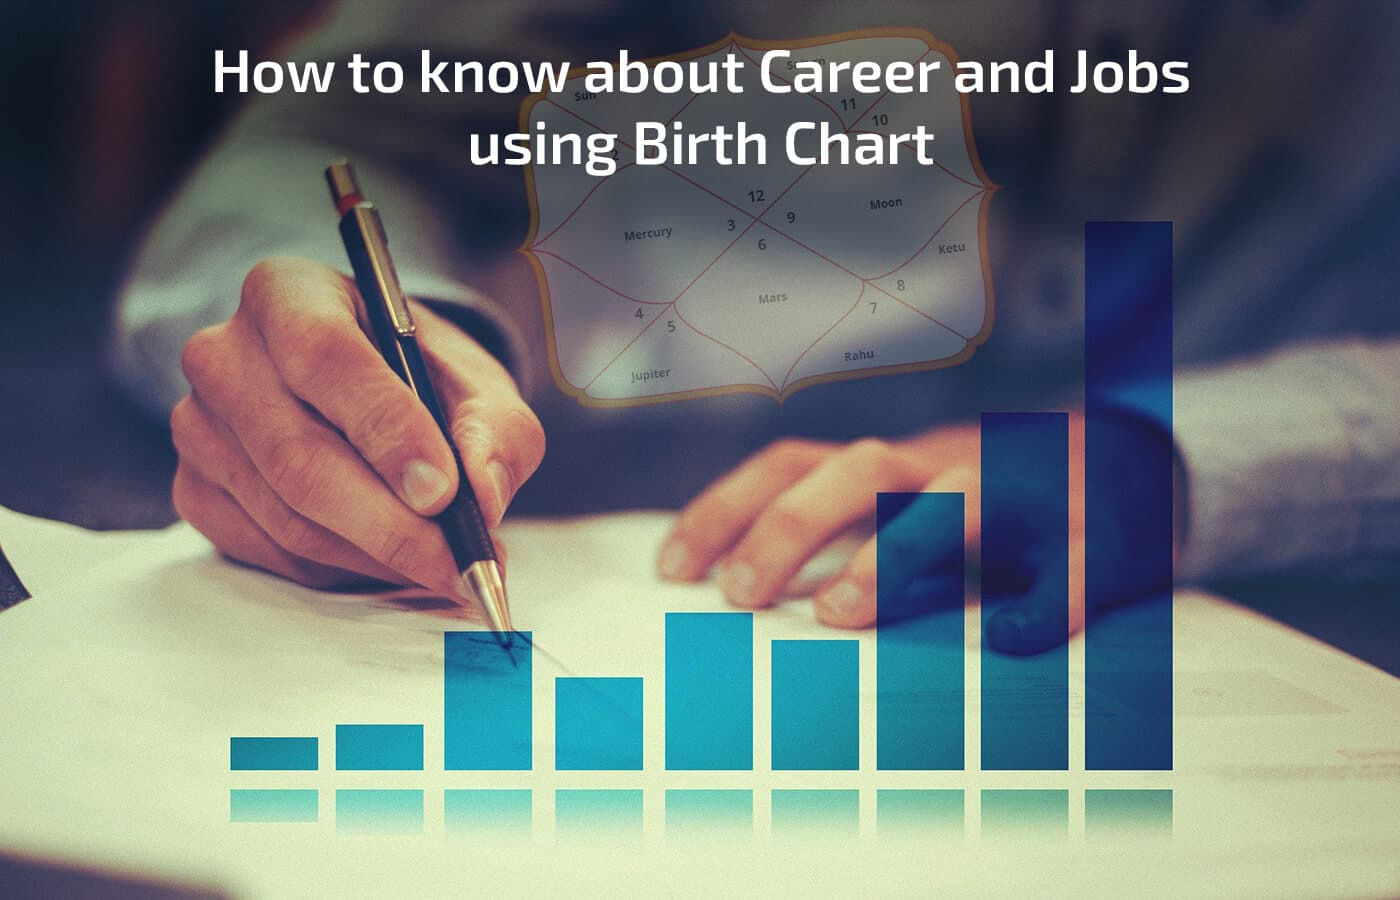 How to know about Career and Jobs using Birth chart